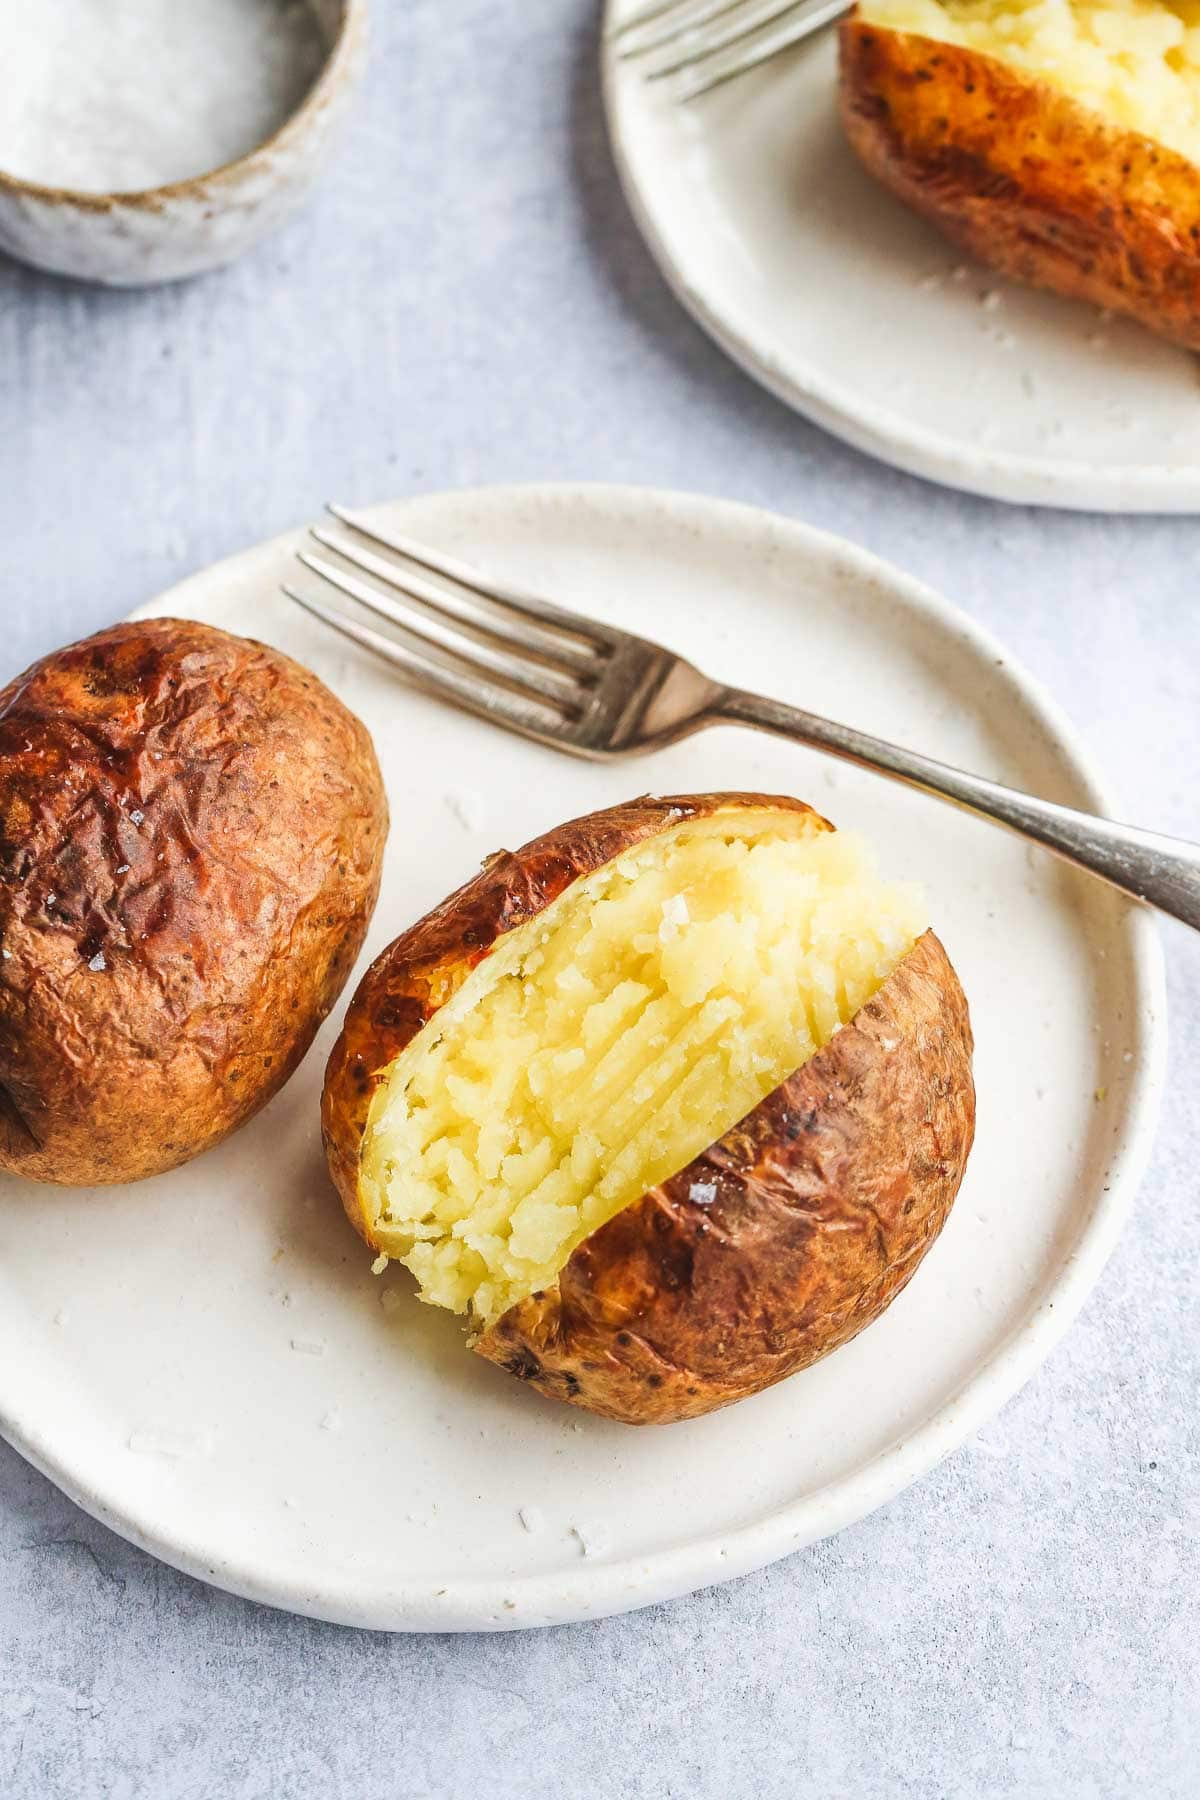 Sliced open air fryer baked potato with its inside fluffed and seasoned with sea salt served on a white plate with a fork. Along with another golden backed potato.